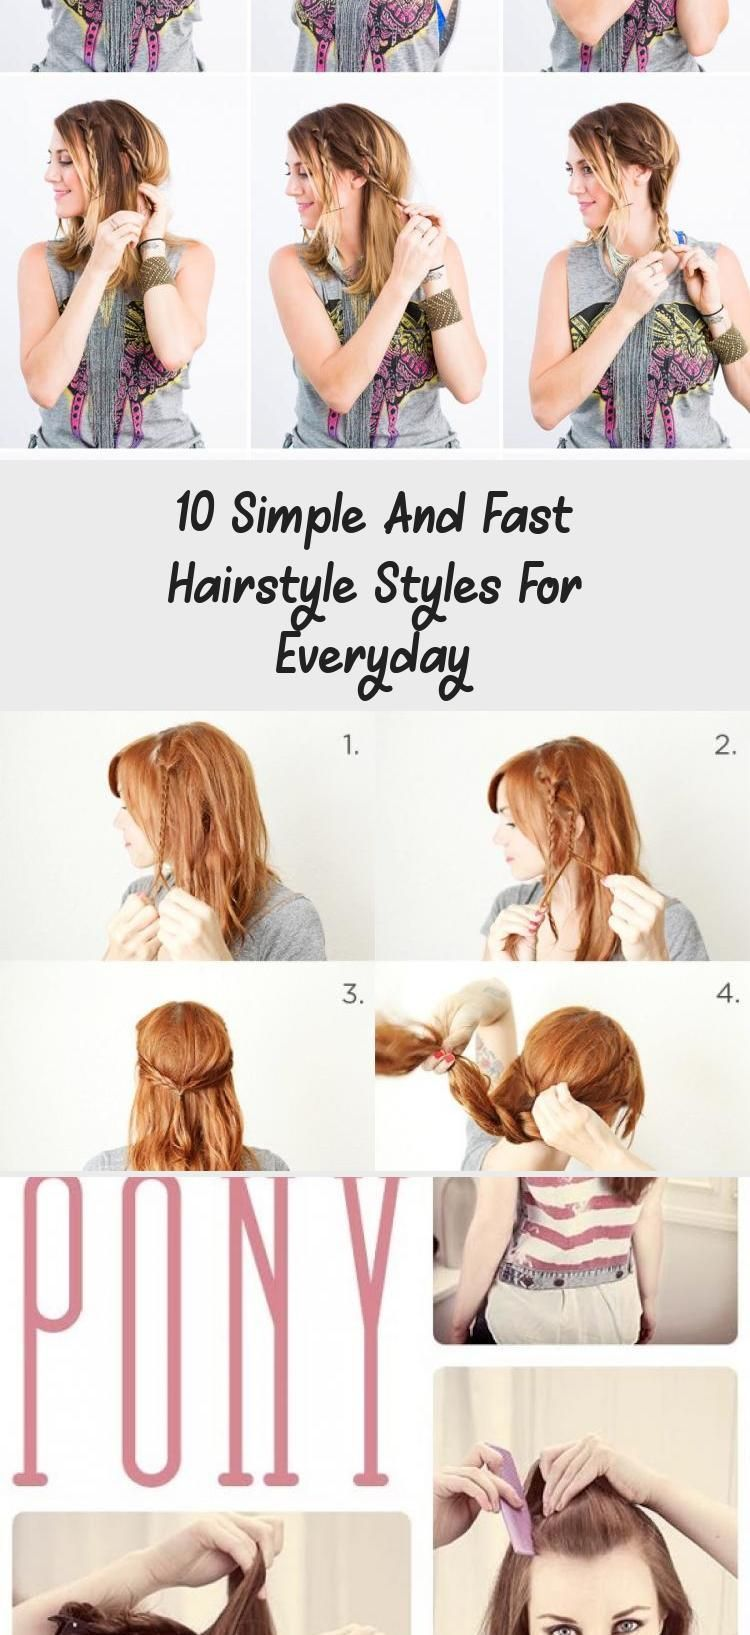 10 Simple And Fast Hairstyle Styles For Everyday Hair Styles 10 Simple And Fast Hairstyle Styles For In 2020 Fast Hairstyles Cute Everyday Hairstyles Hair Styles